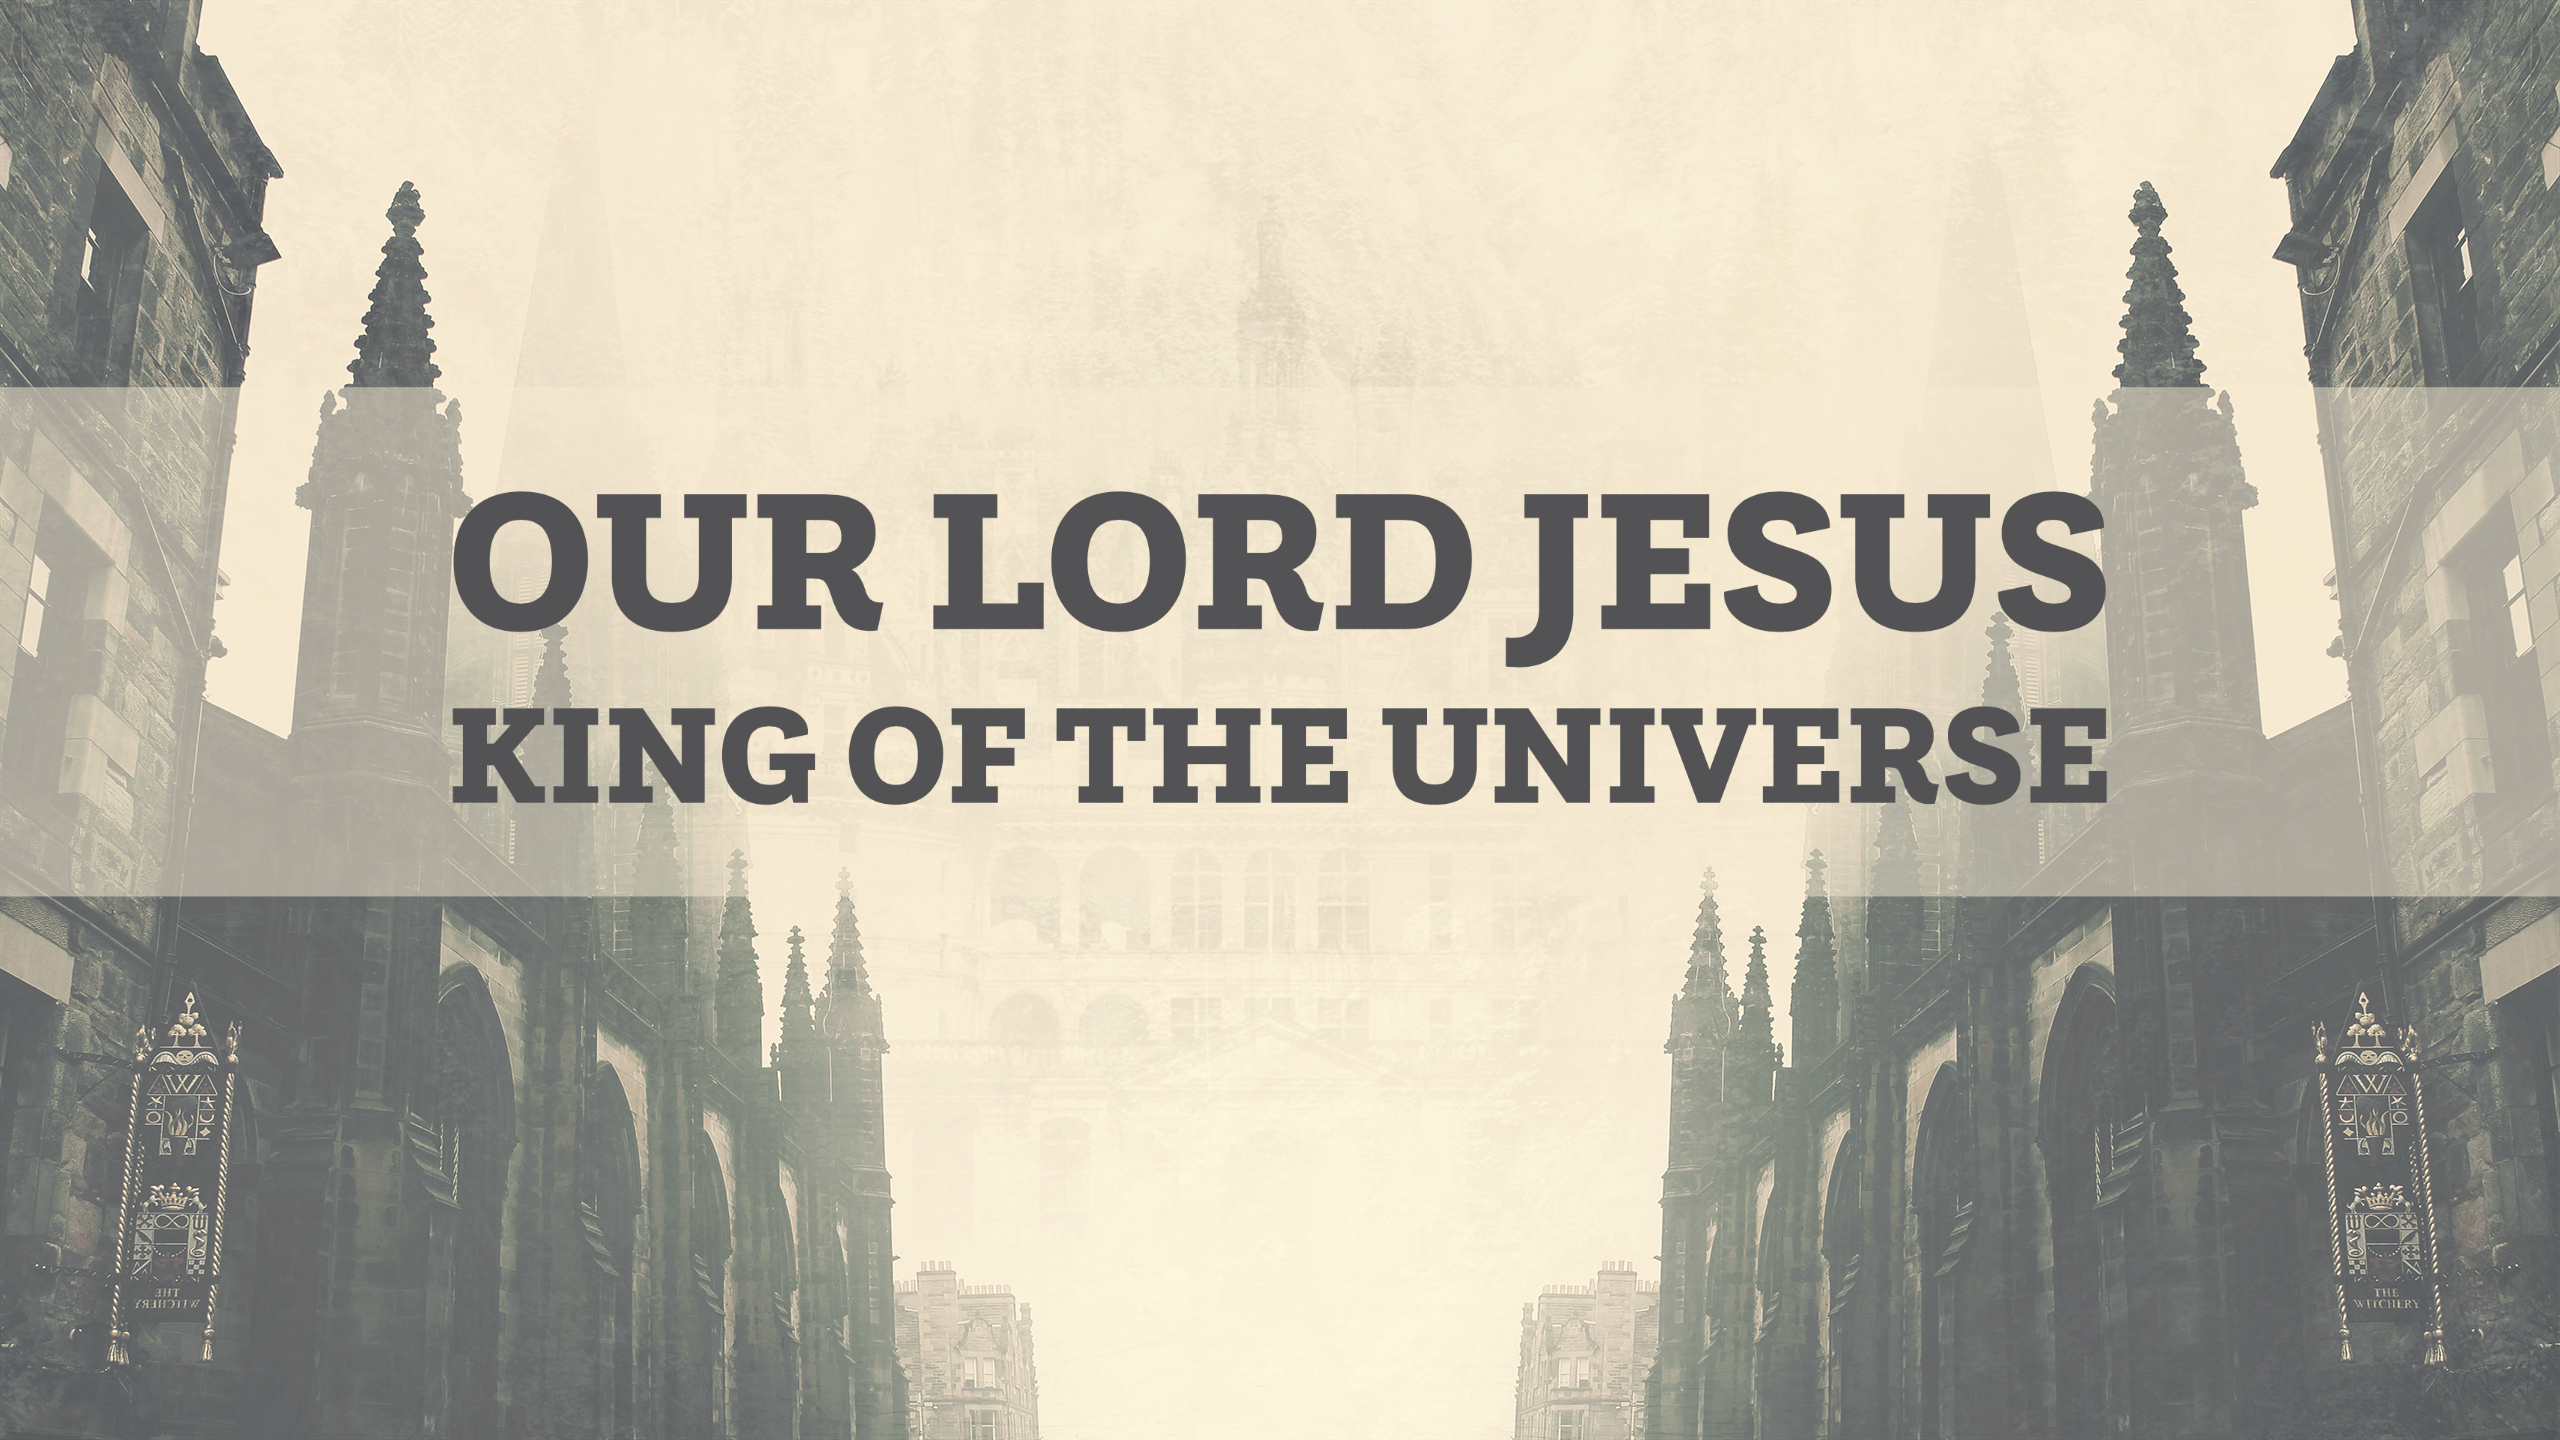 Our Lord Jesus, King of the Universe